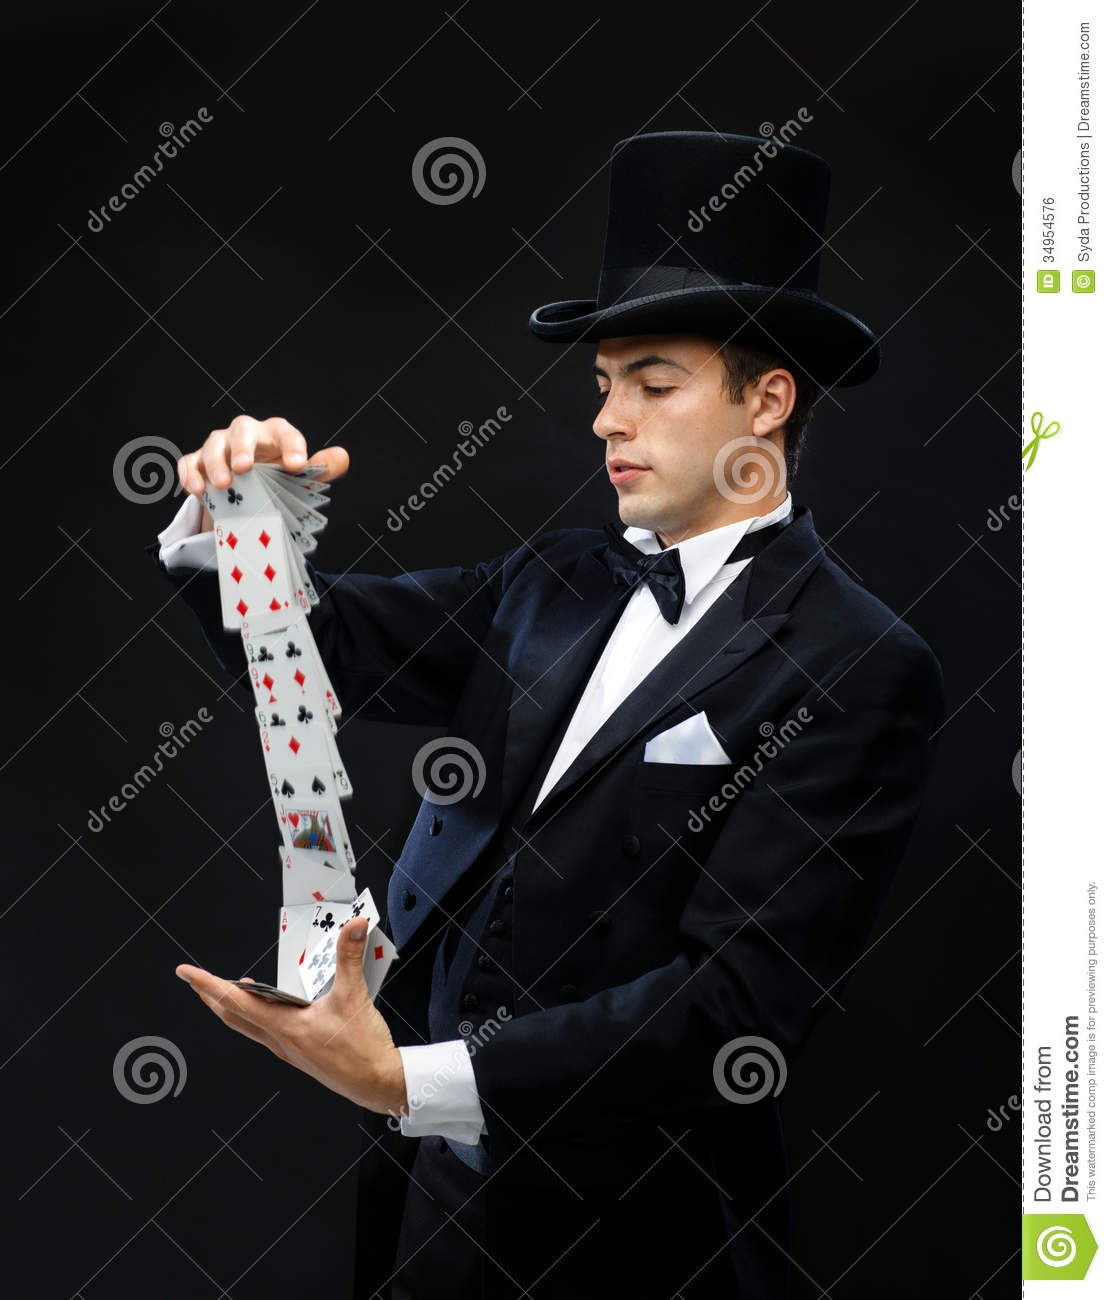 gambling card tricks